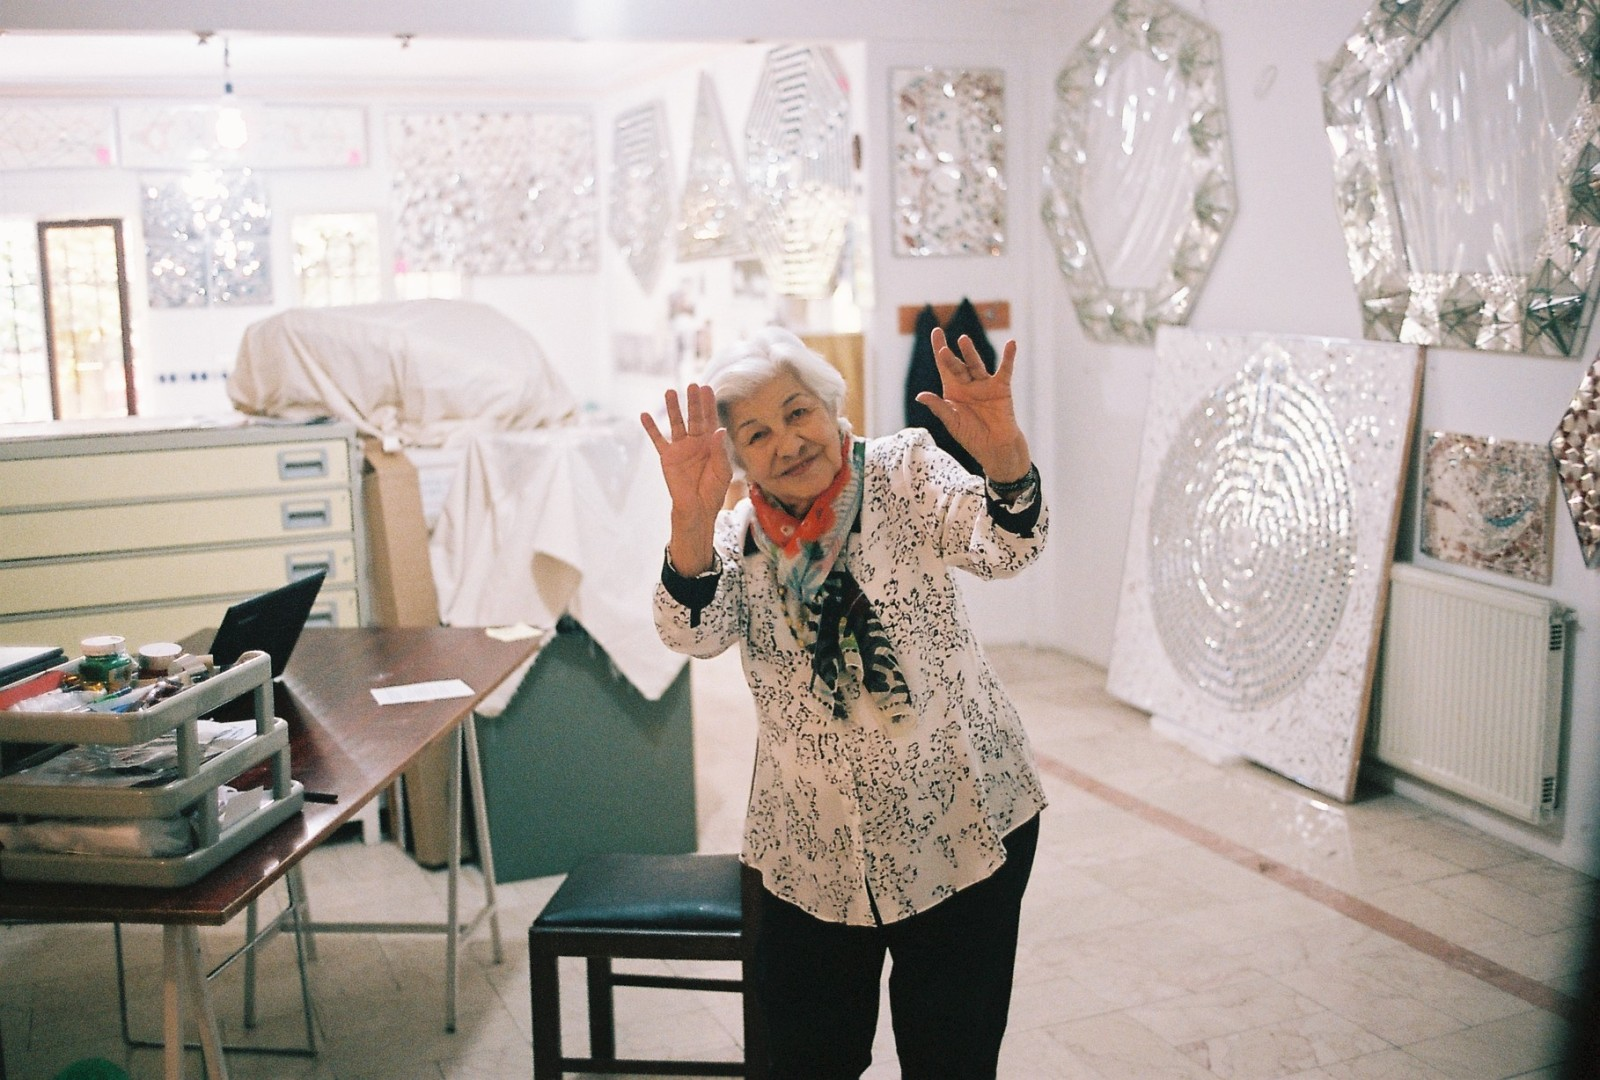 Monir Shahroudy Farmanfarmaian from Tehran